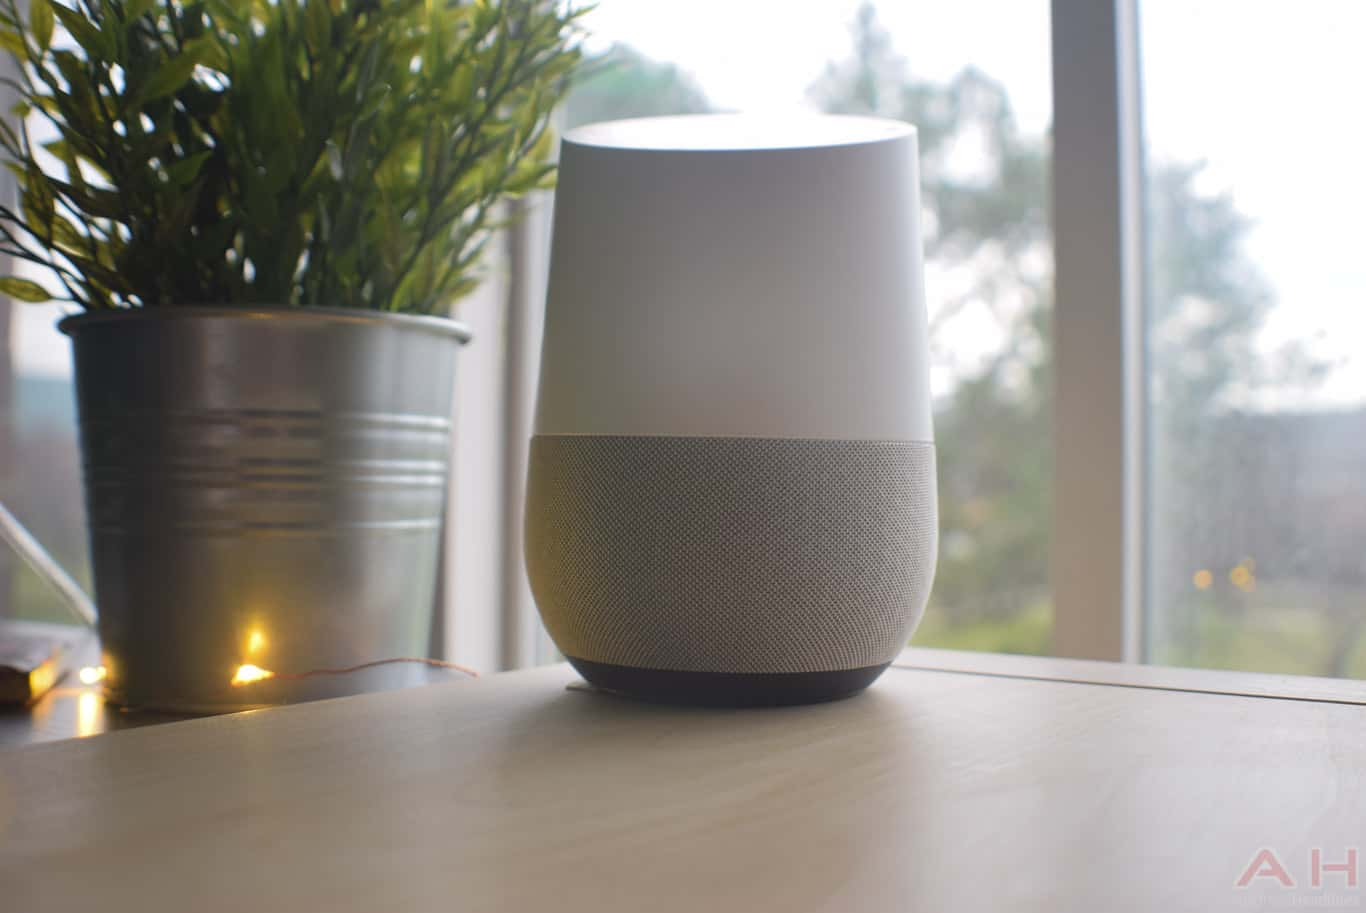 Google-Home-Google-Assistant-AM-AH-0027.jpg